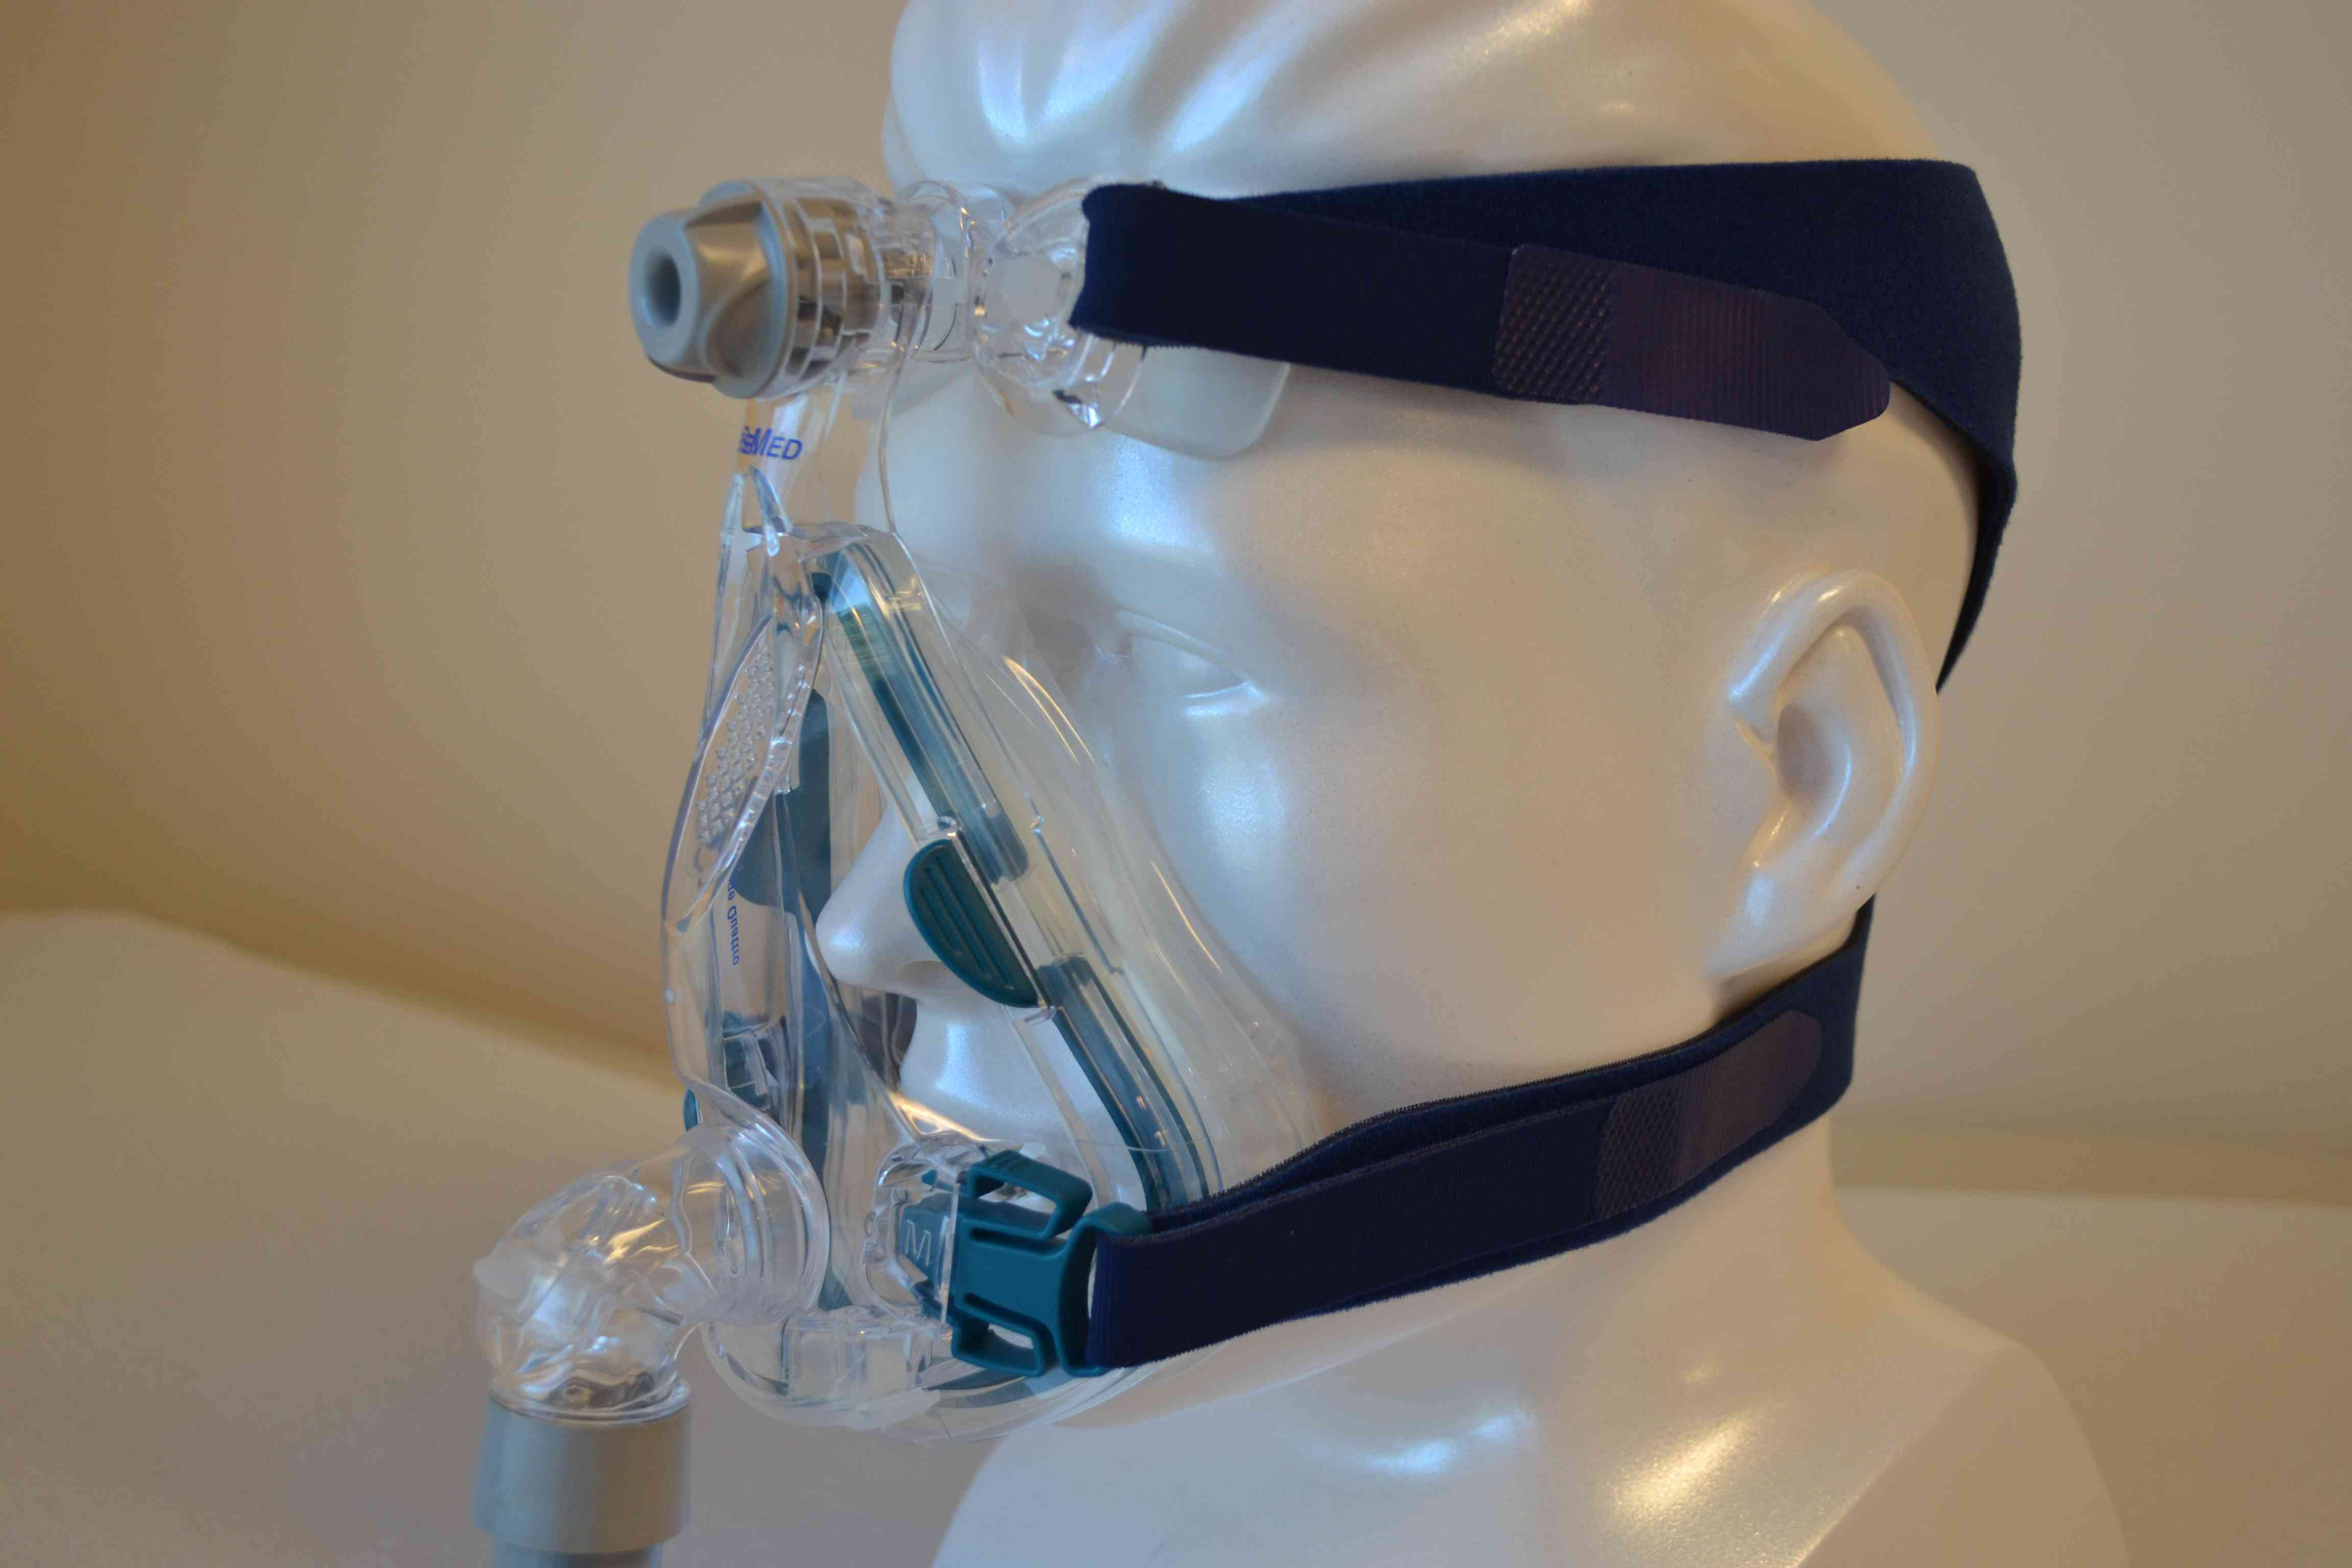 Mannequin wearing a CPAP mask